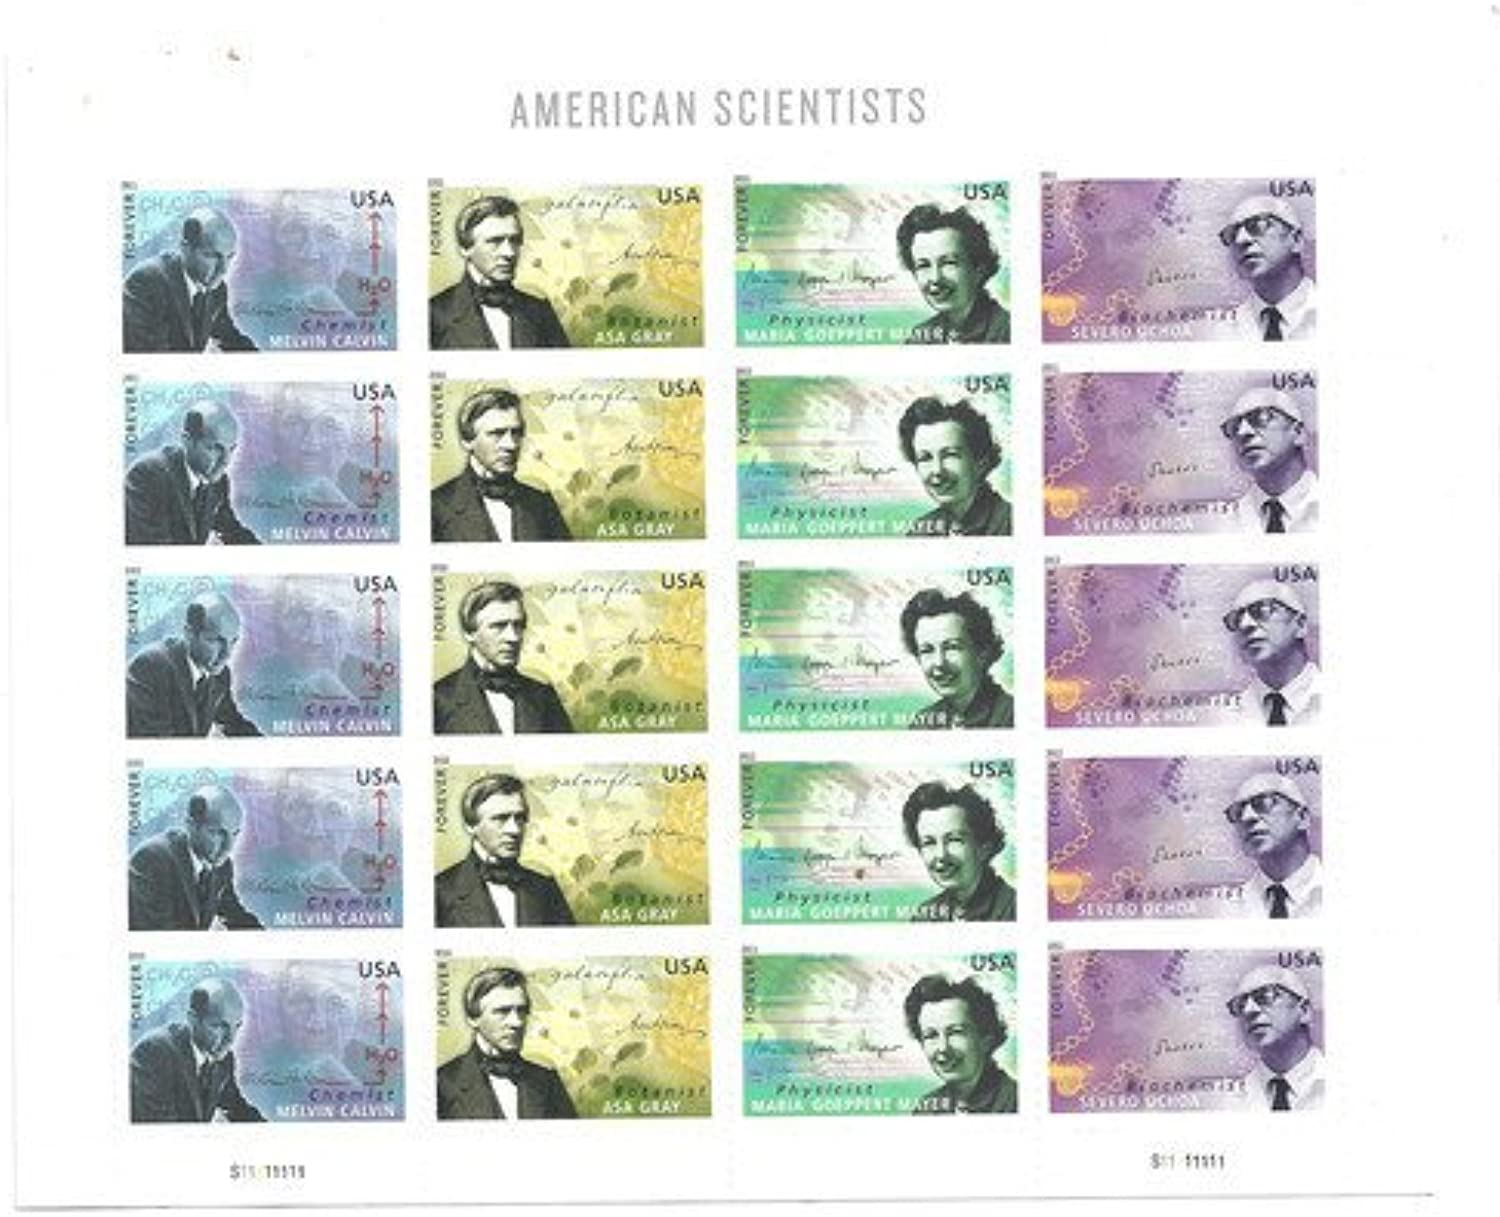 American Scientists 2011 Sheet of 20 Mint US Postage Stamps 4541-4544 by USPS